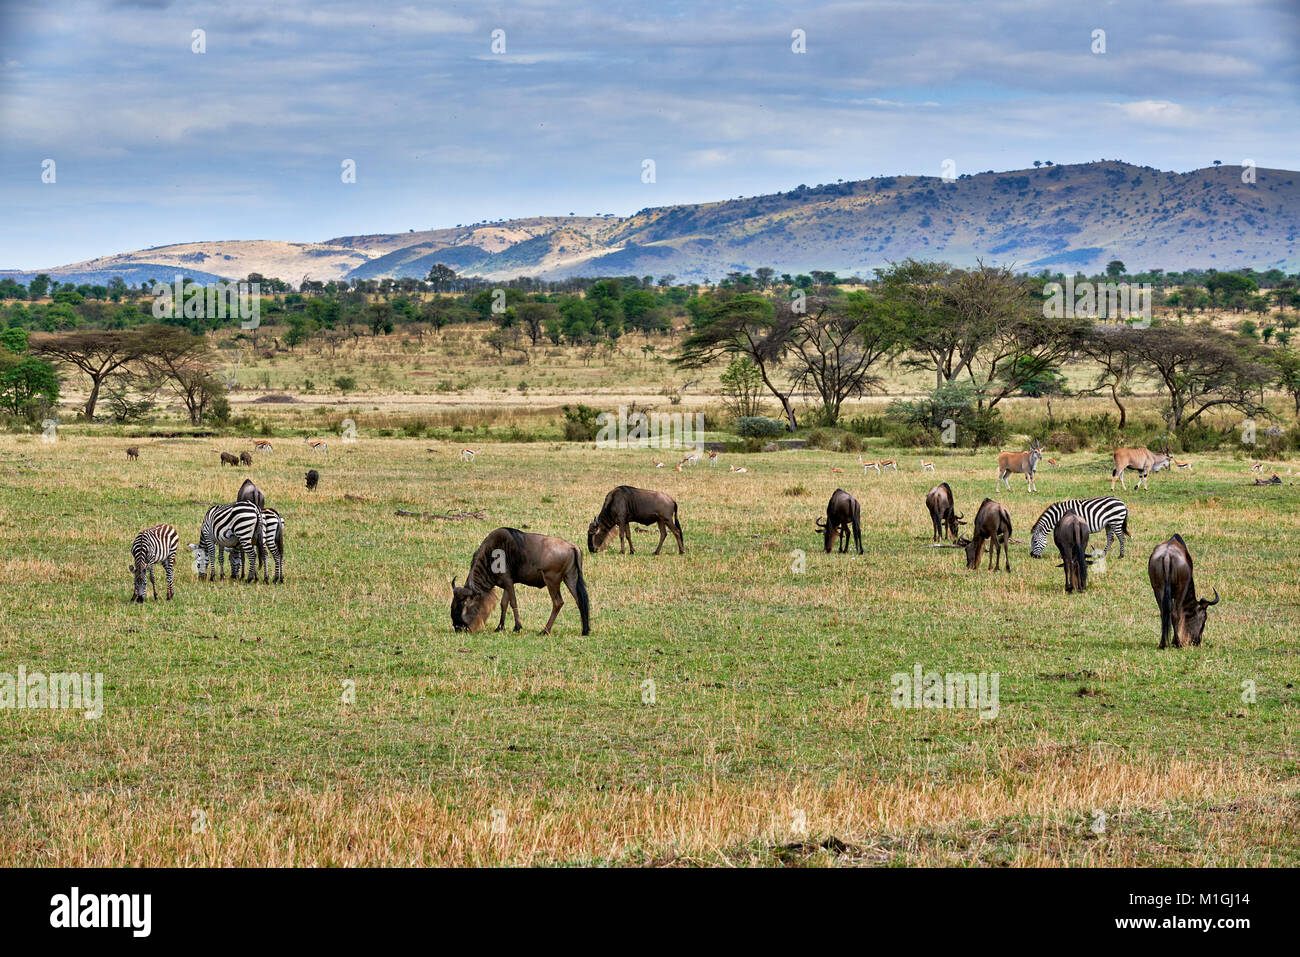 mixed anteloped in landscape of Serengeti National Park, UNESCO world heritage site, Tanzania, Africa Stock Photo